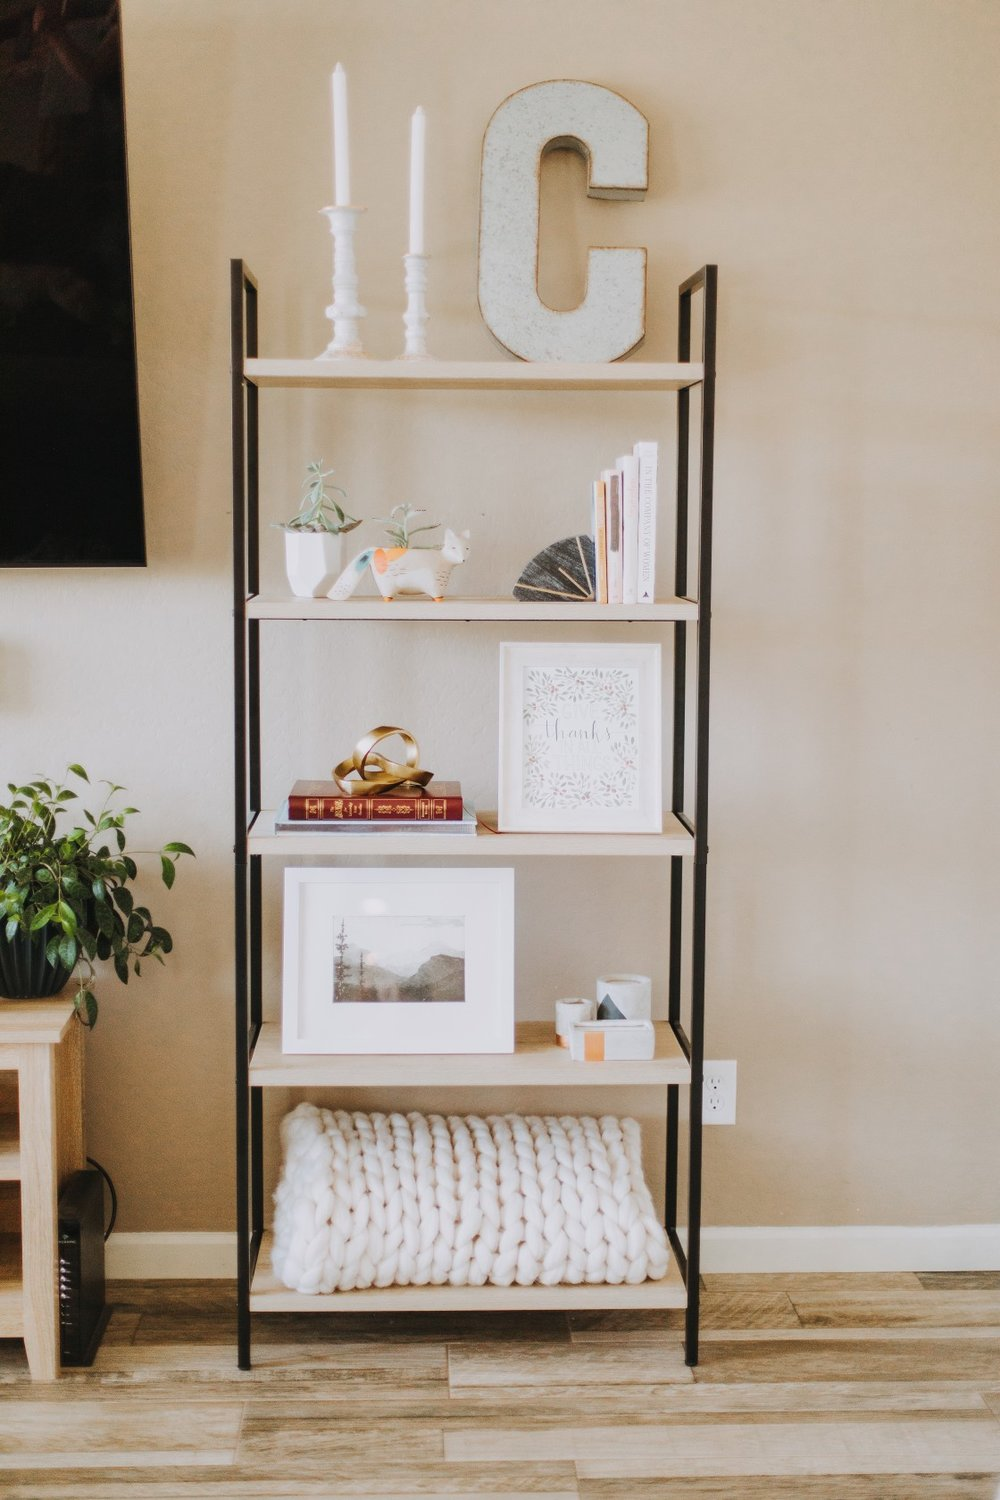 step 1— the bookshelf - Find your favorite bookshelf! I love the modern and open design of this one.